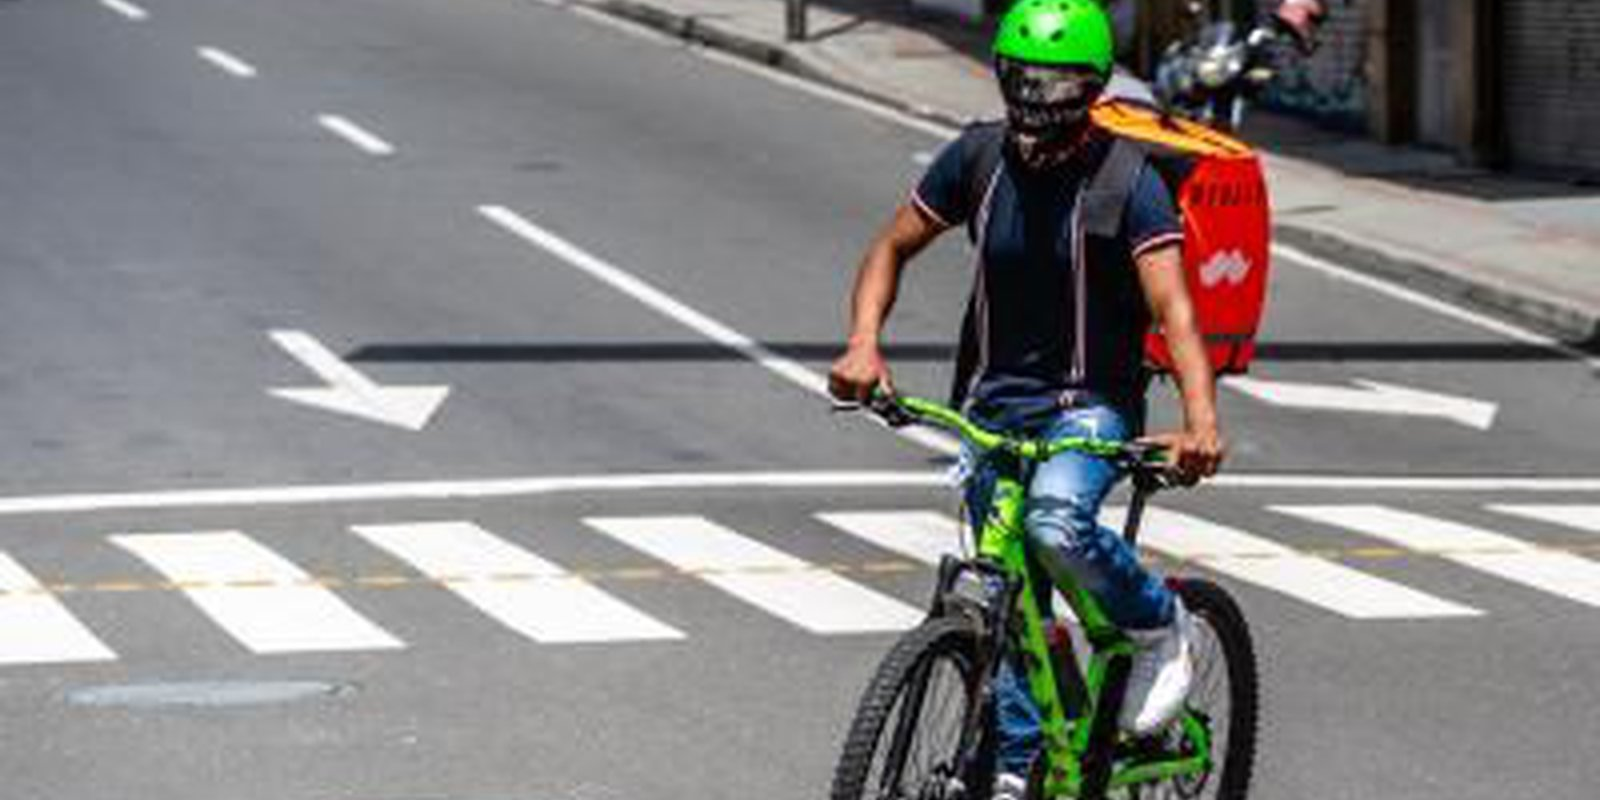 Image — A delivery courier wearing a protective mask rides through Medellin, Colombia, on 24 July 2020.